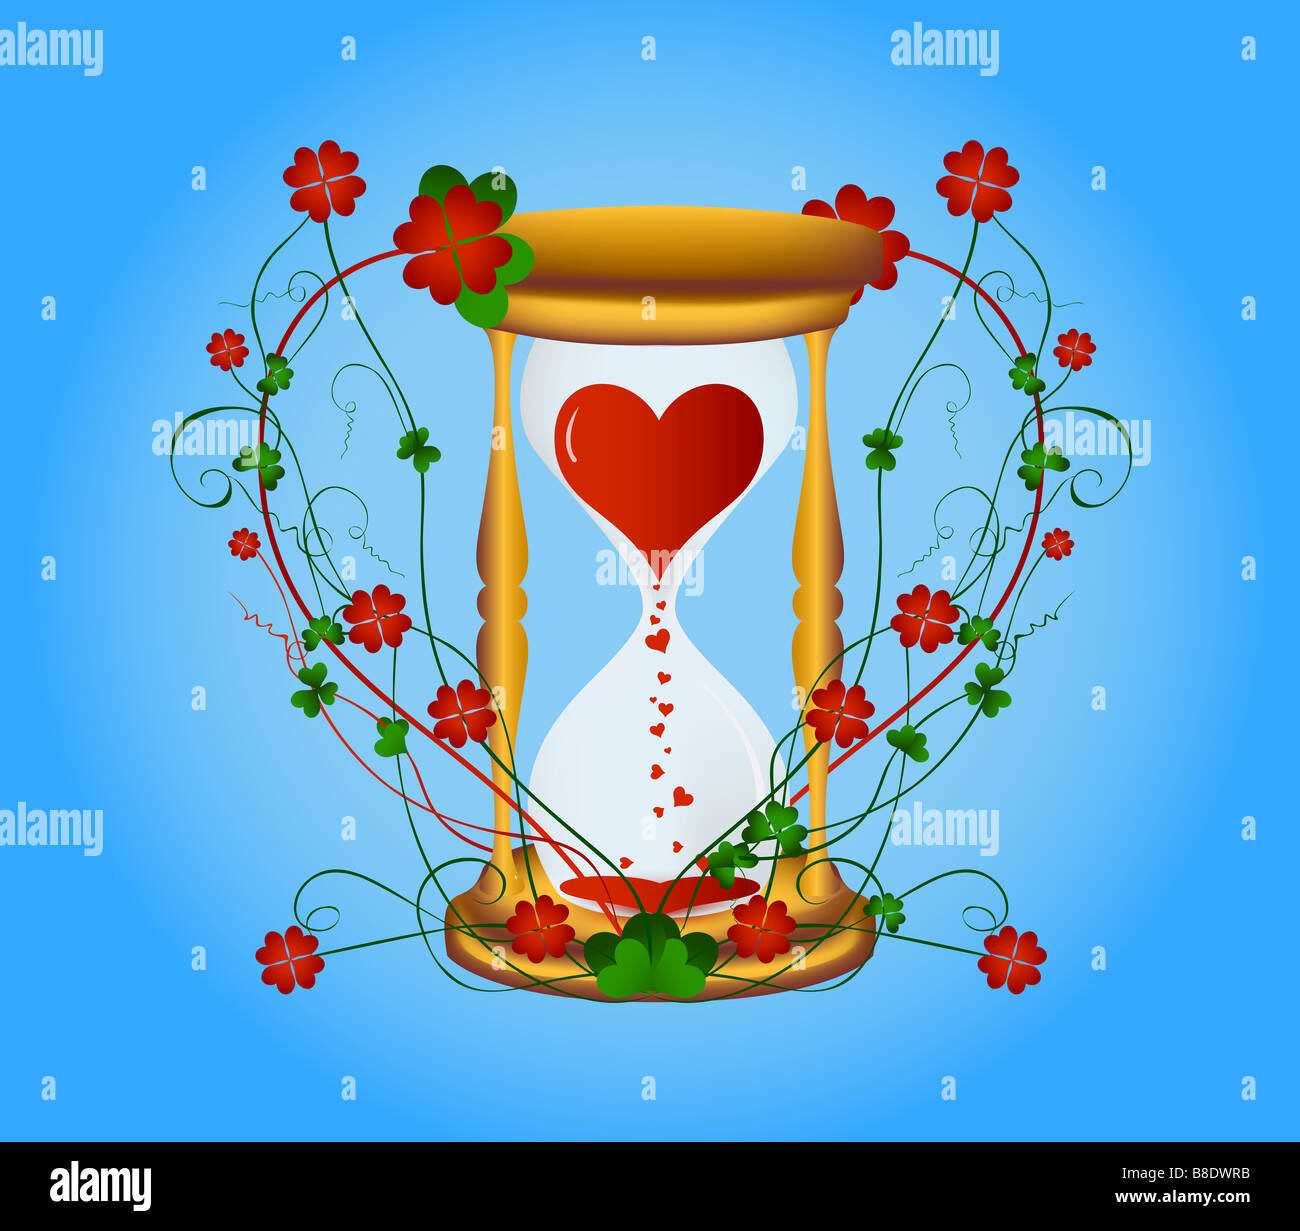 Sandglass to Valentine's Day with a flower pattern - Stock Image